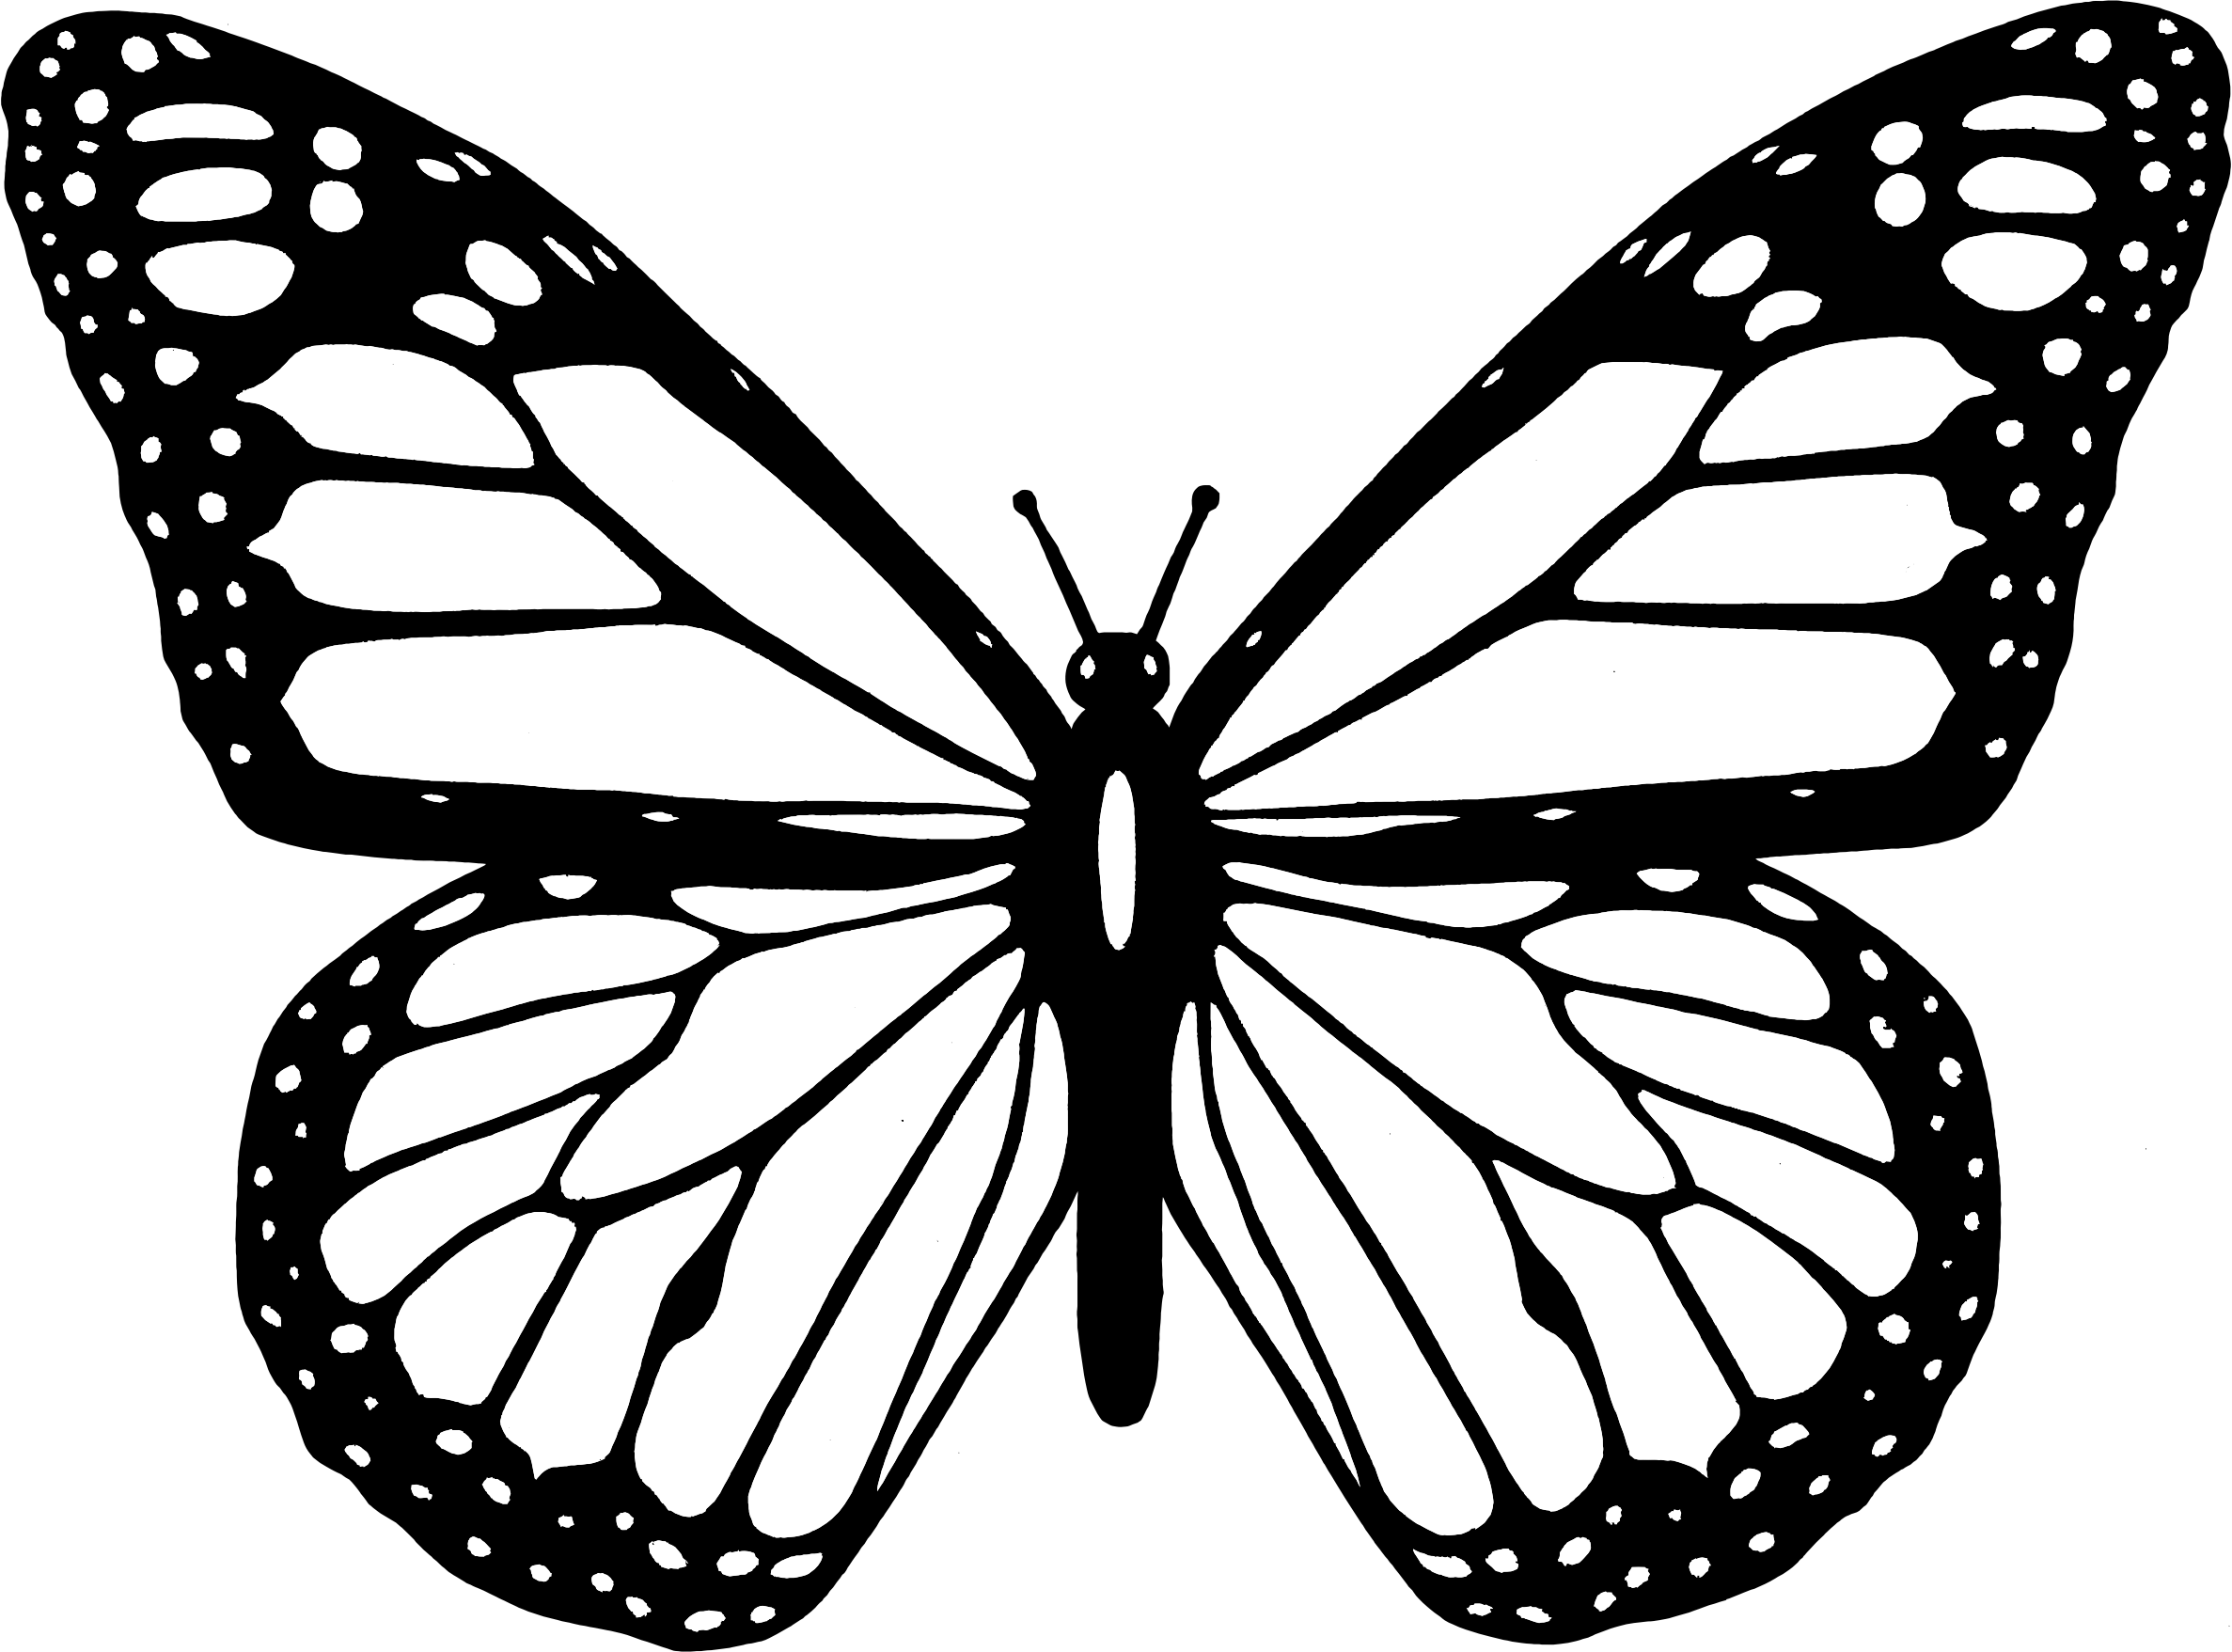 Announcements clipart black and white. Butterfly big image png